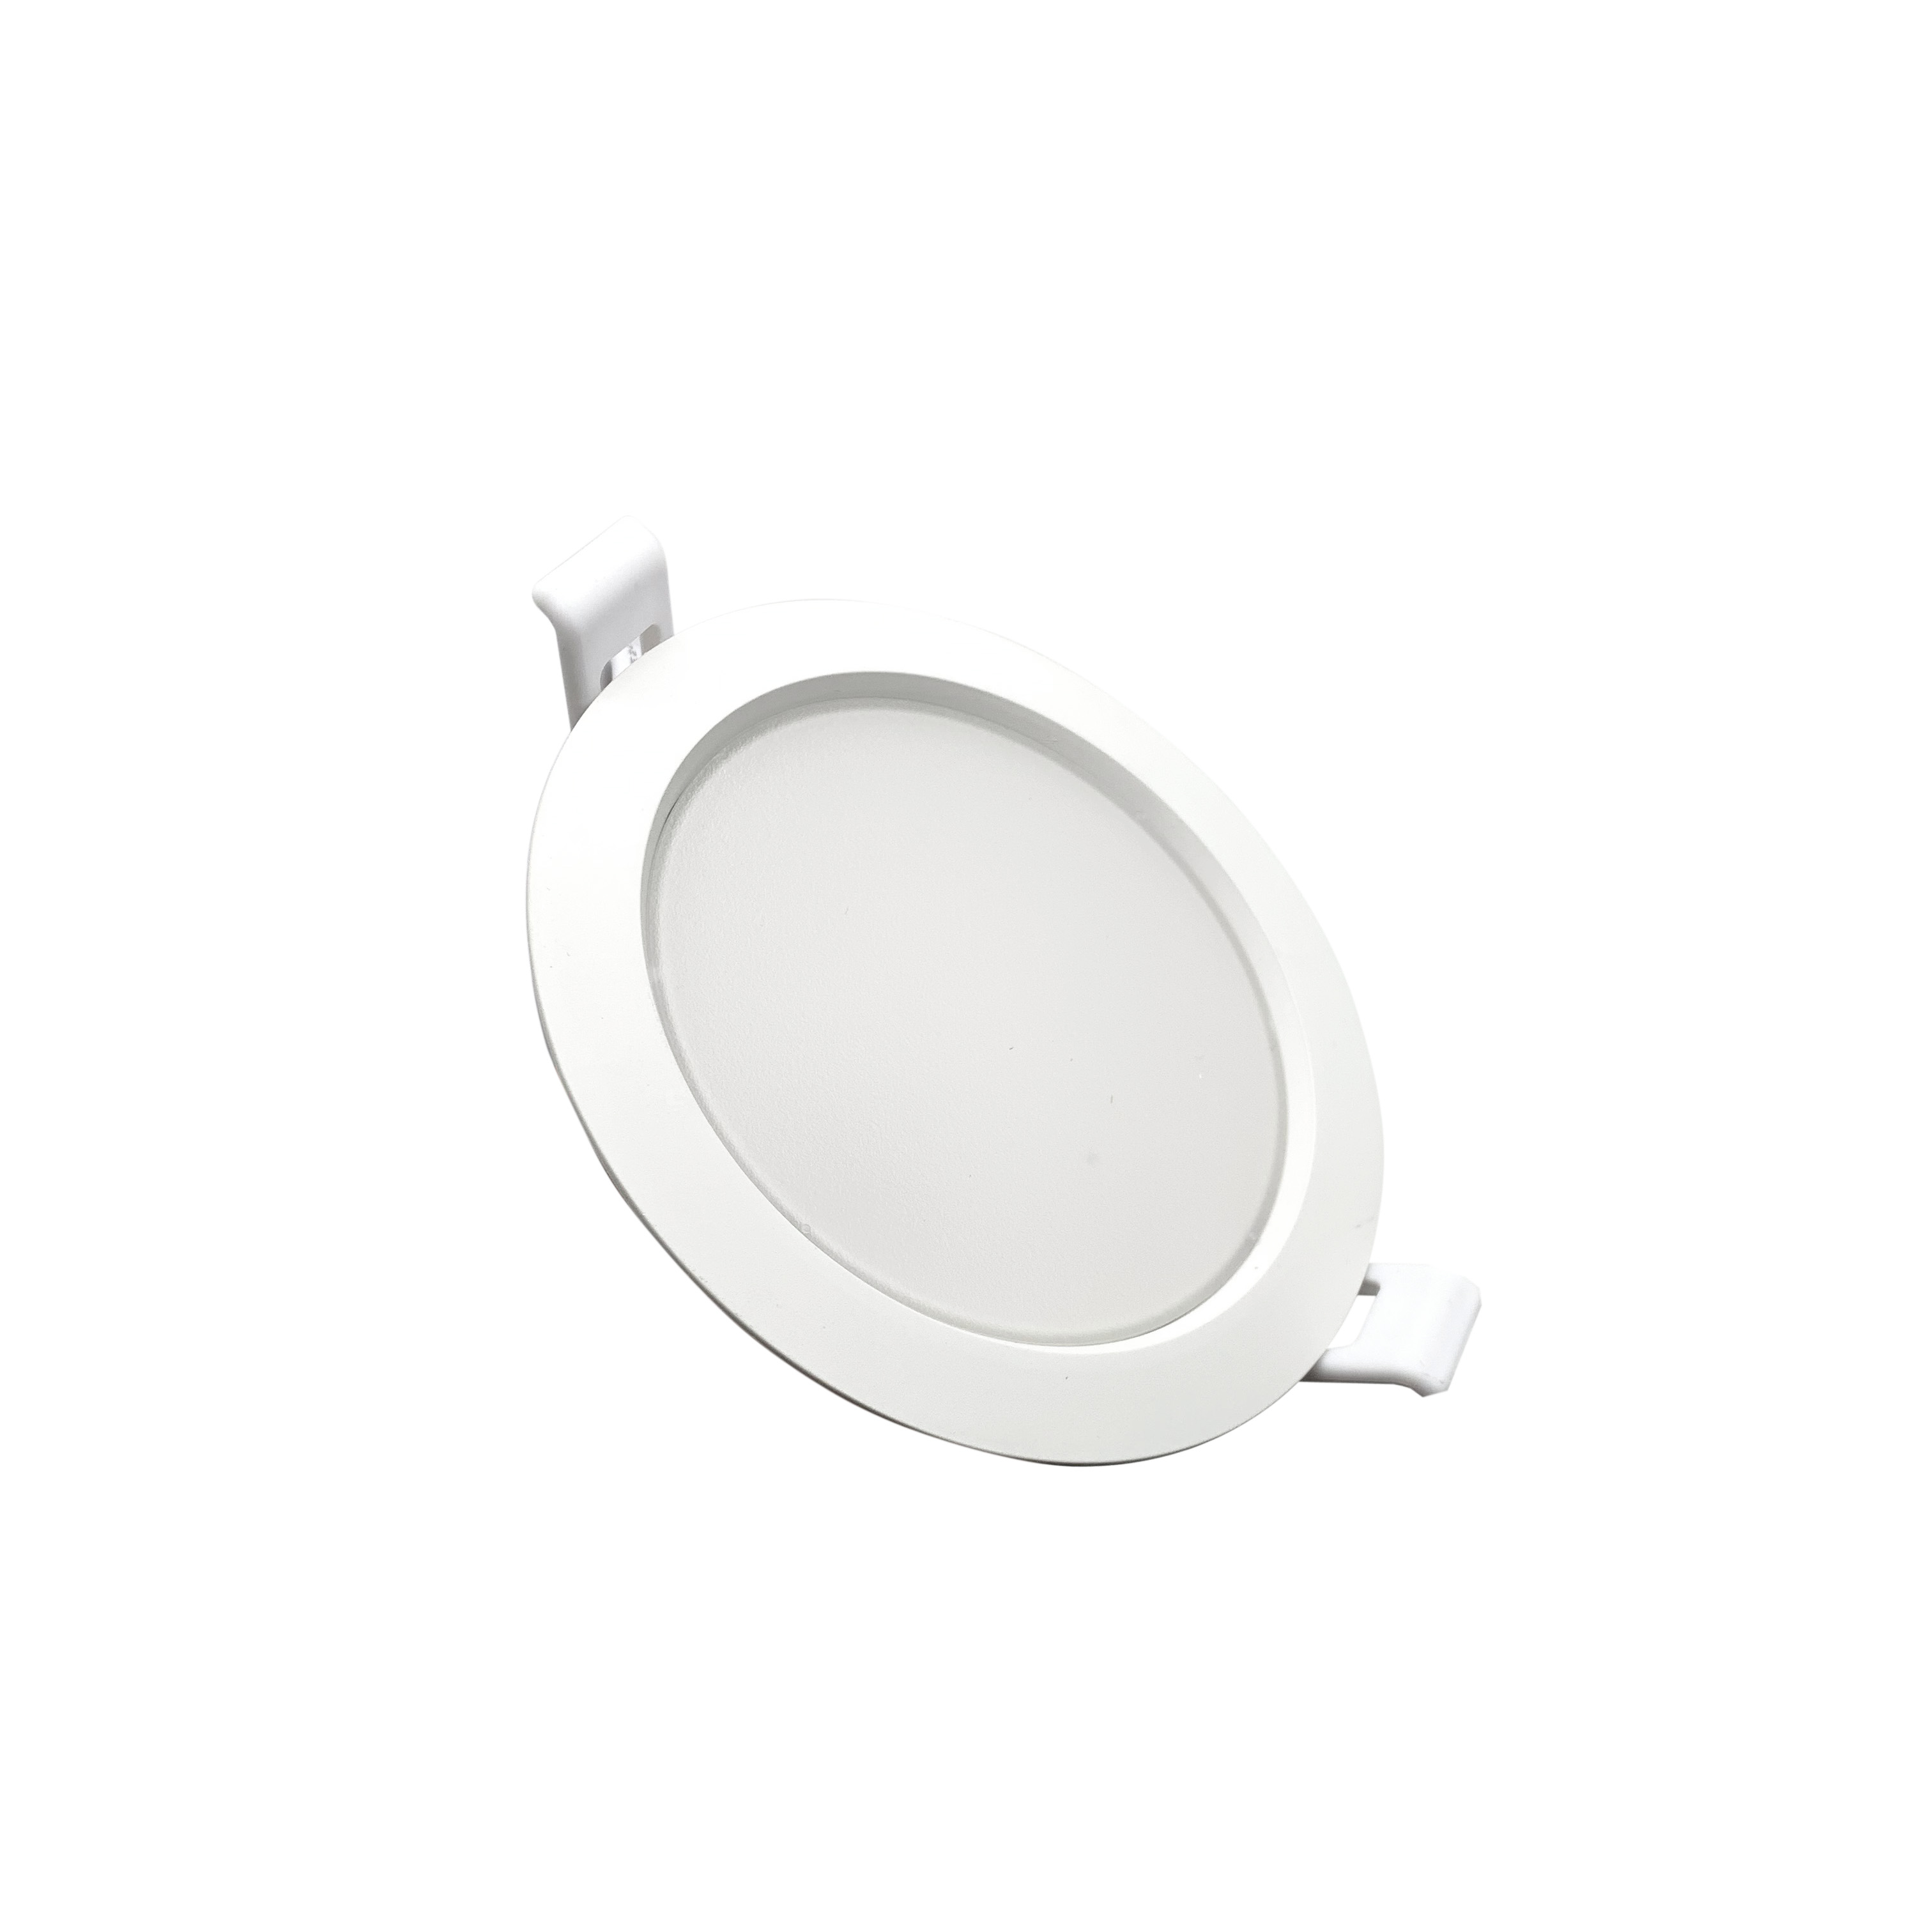 Projecteur LED 220v downlight 10W rond Blanc diamètre de la Jante 115mm DL6g